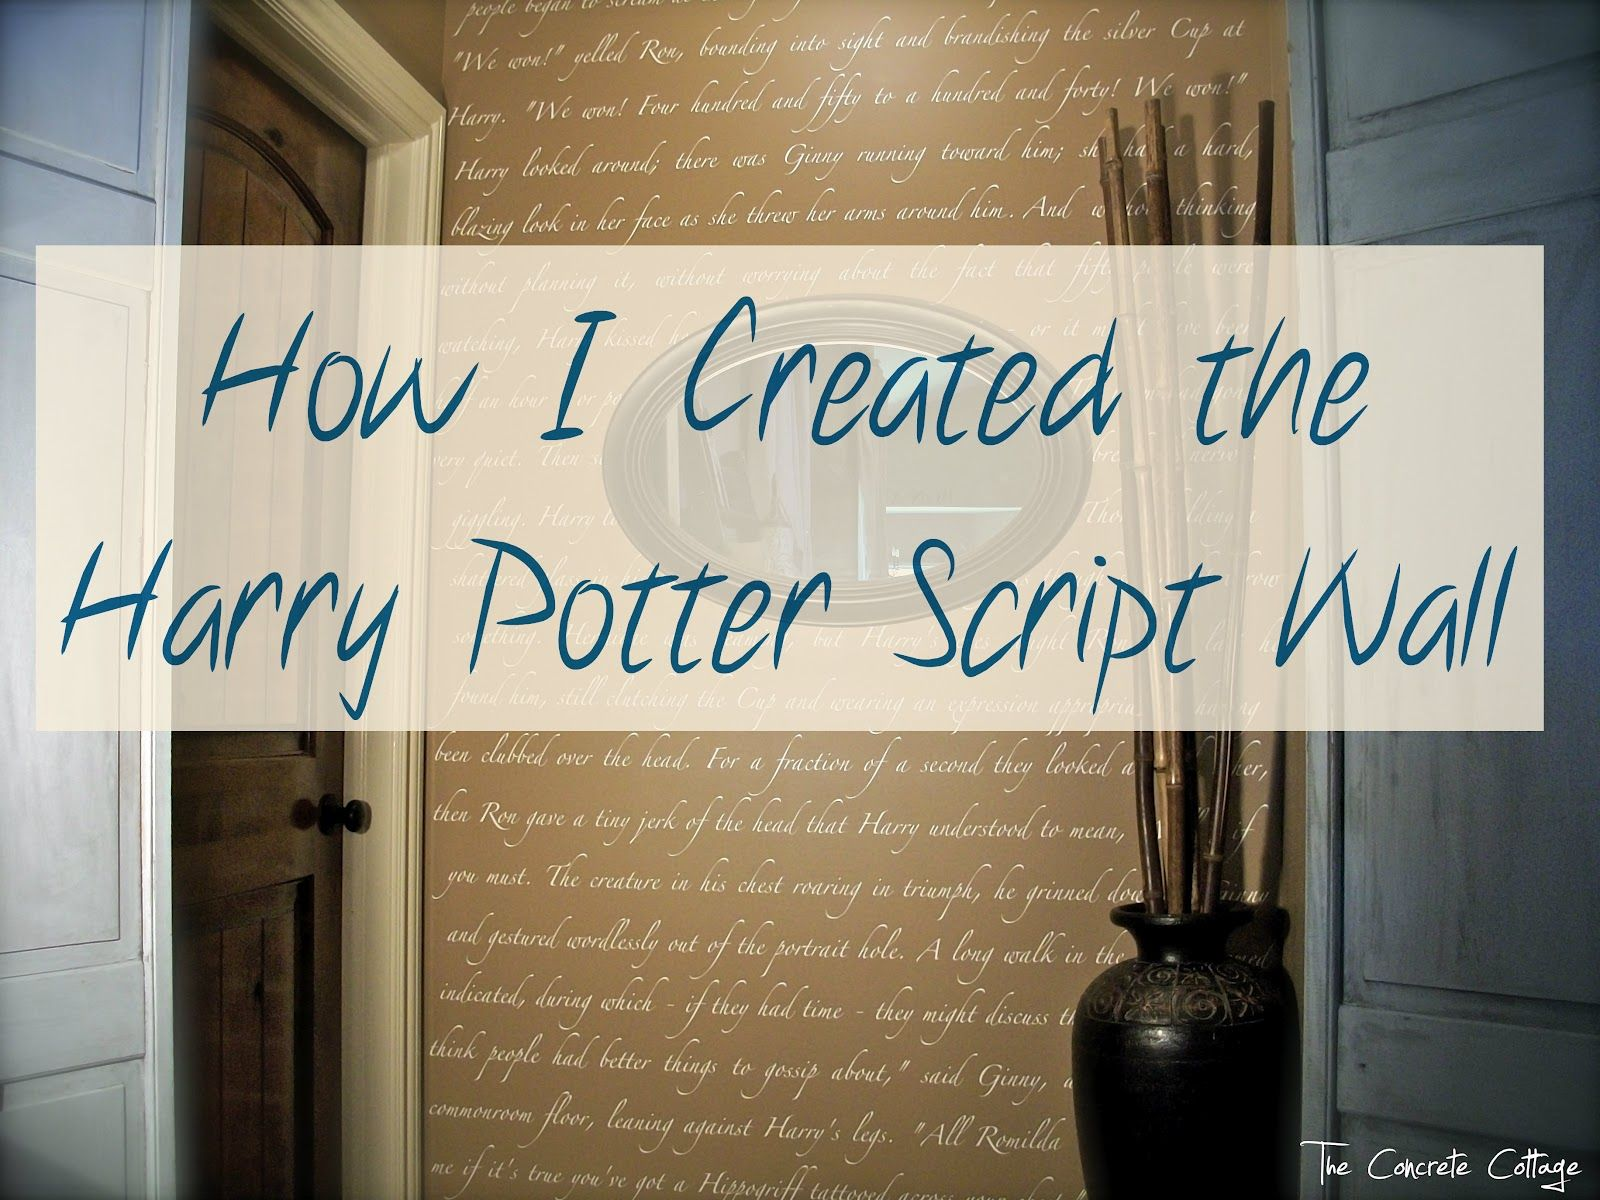 The concrete cottage answering your hp script wall questions walters walters garcia the concrete cottage answering your hp script wall questions to stencil a wall with book scrip using a silhouette cameo to cut amipublicfo Gallery